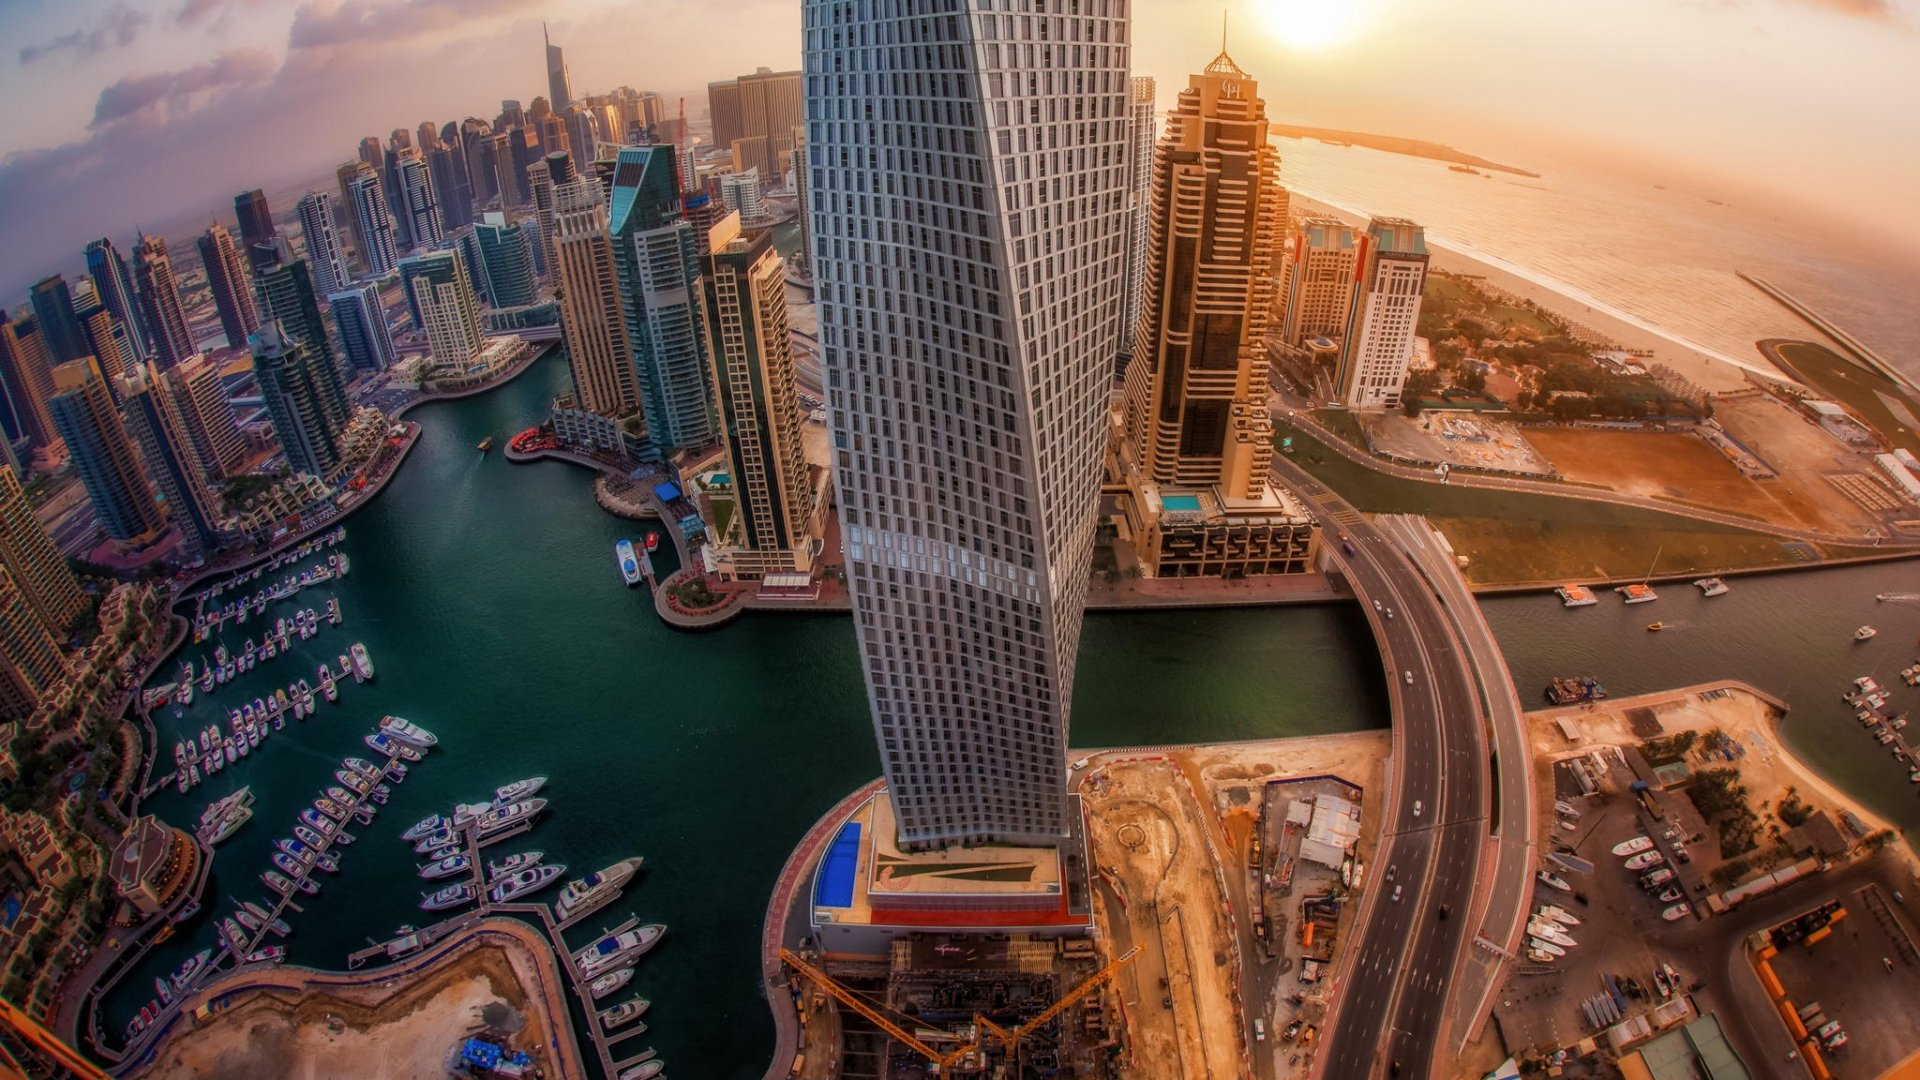 United Arab Emirates Skyscrapers Top View Sunrise City Dubai wallpaper